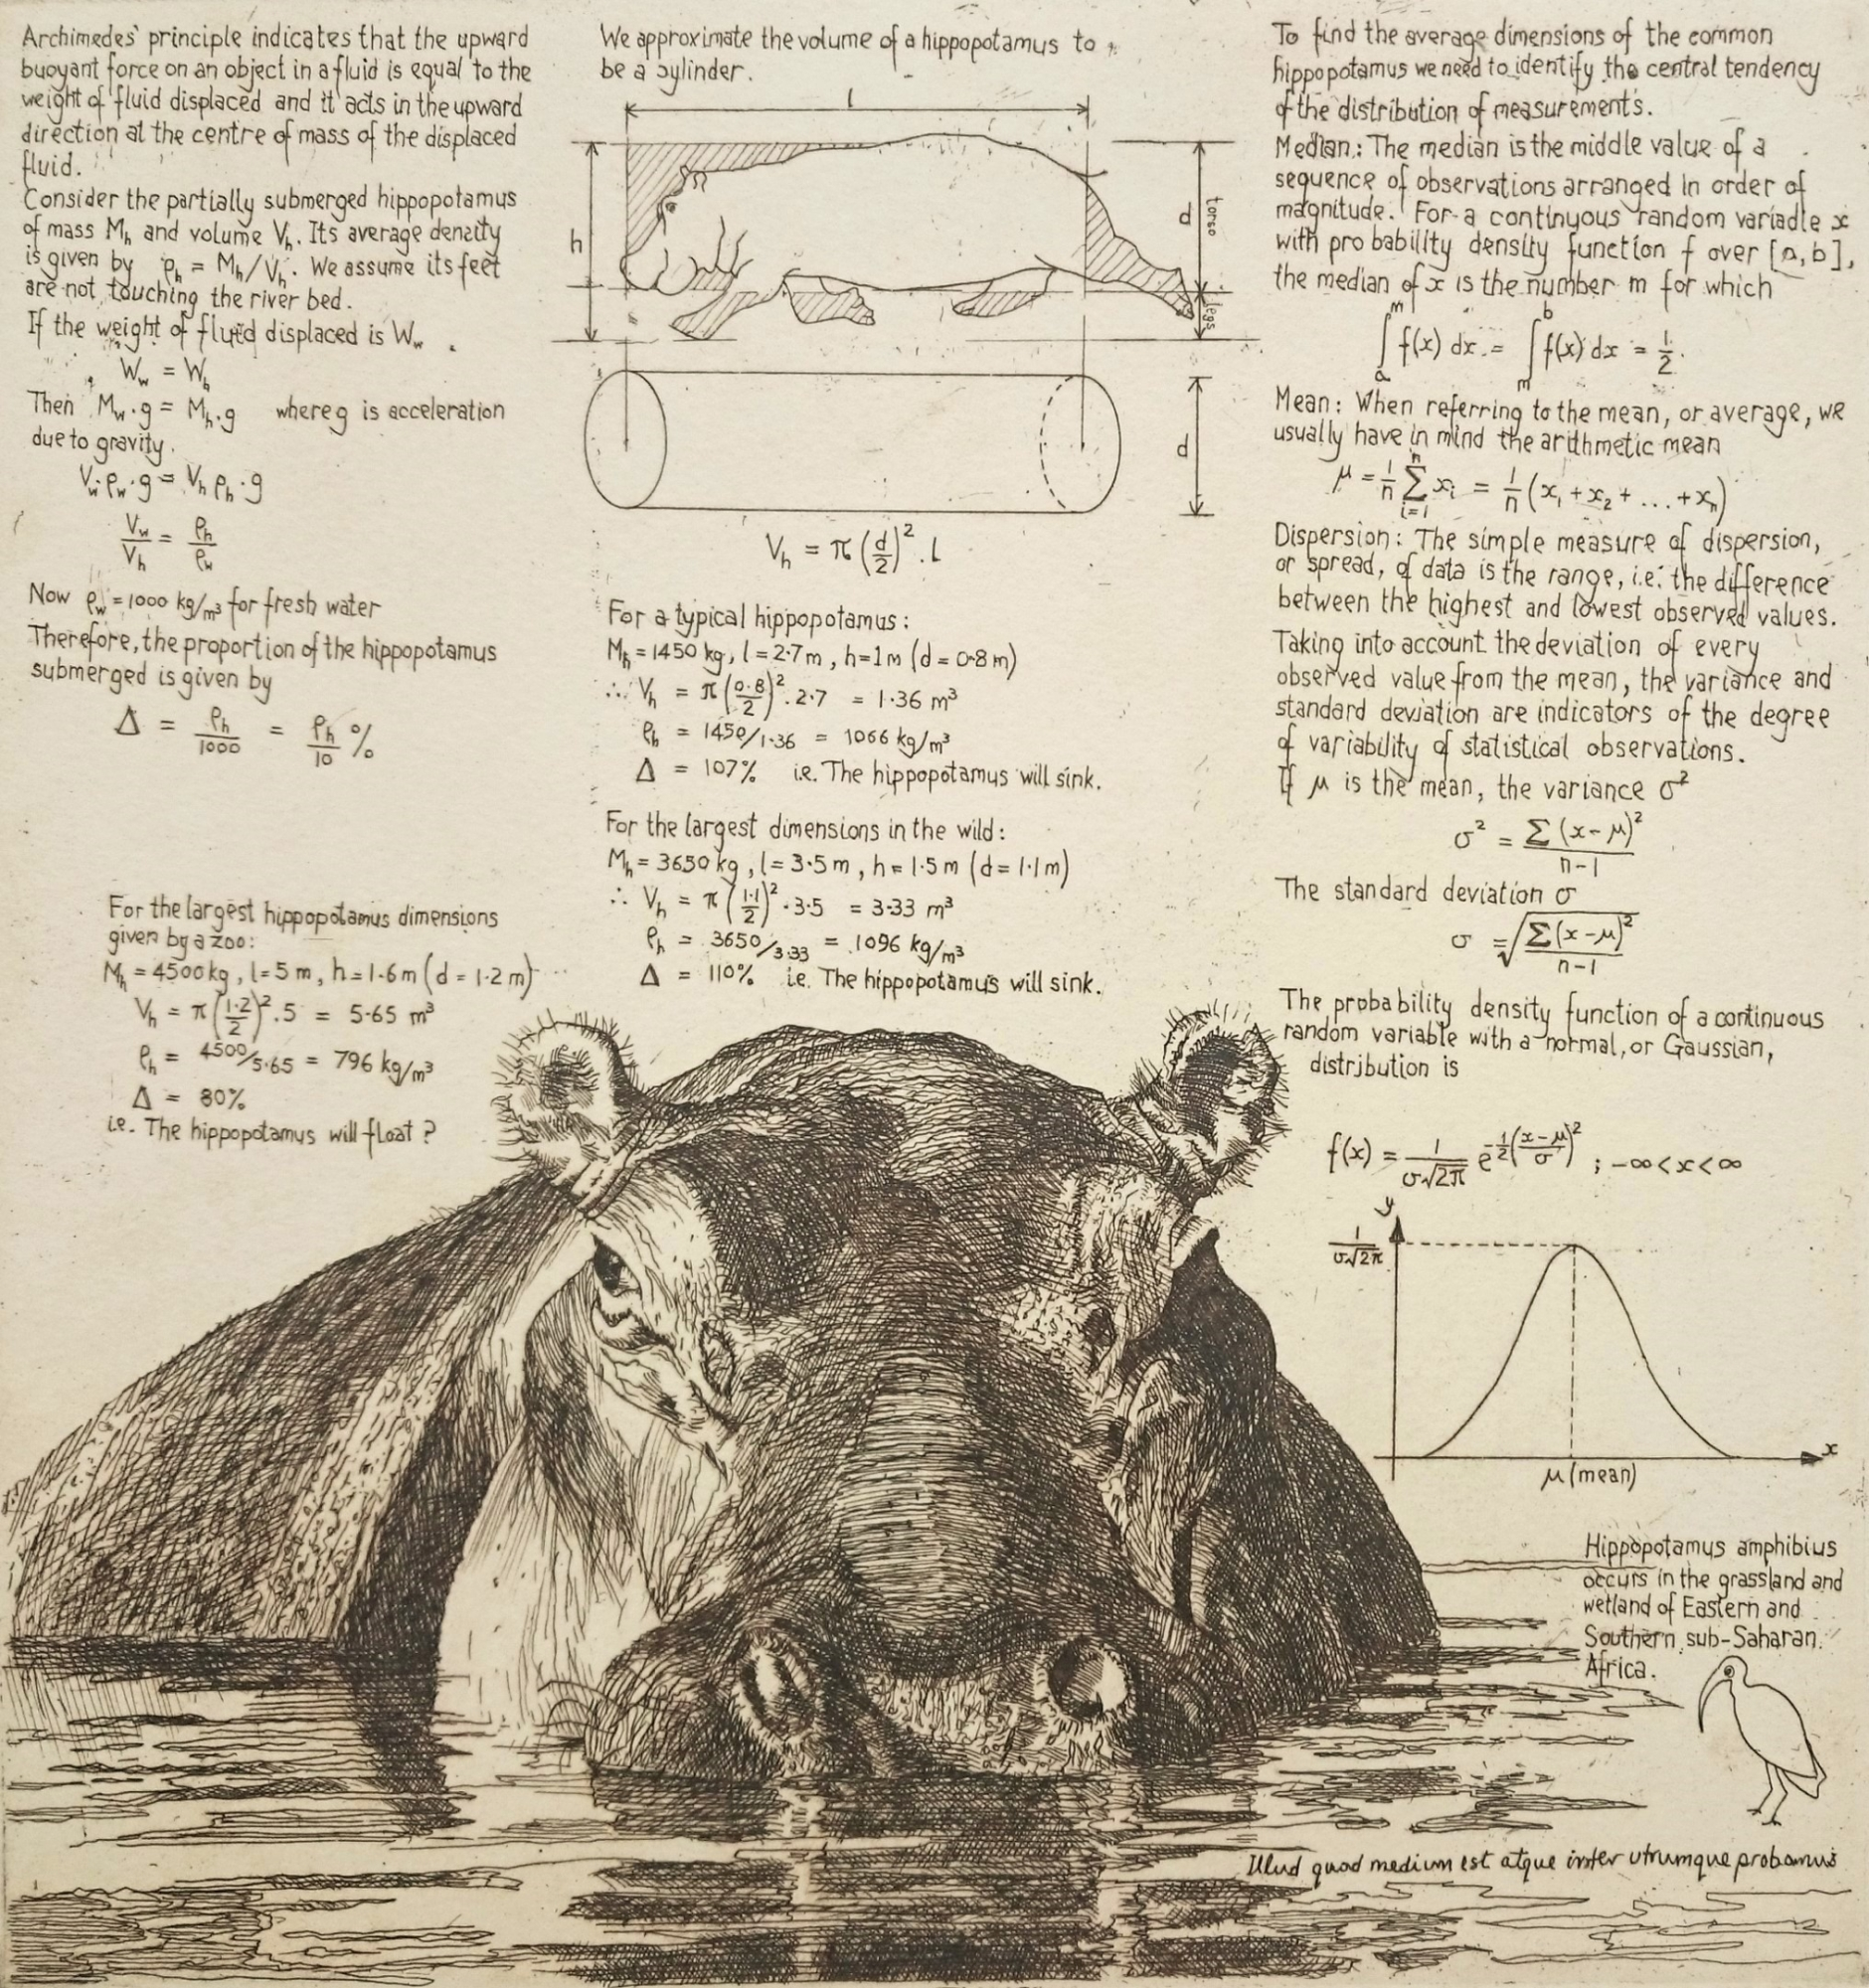 Etching of hippopotamus with notes on buoyancy